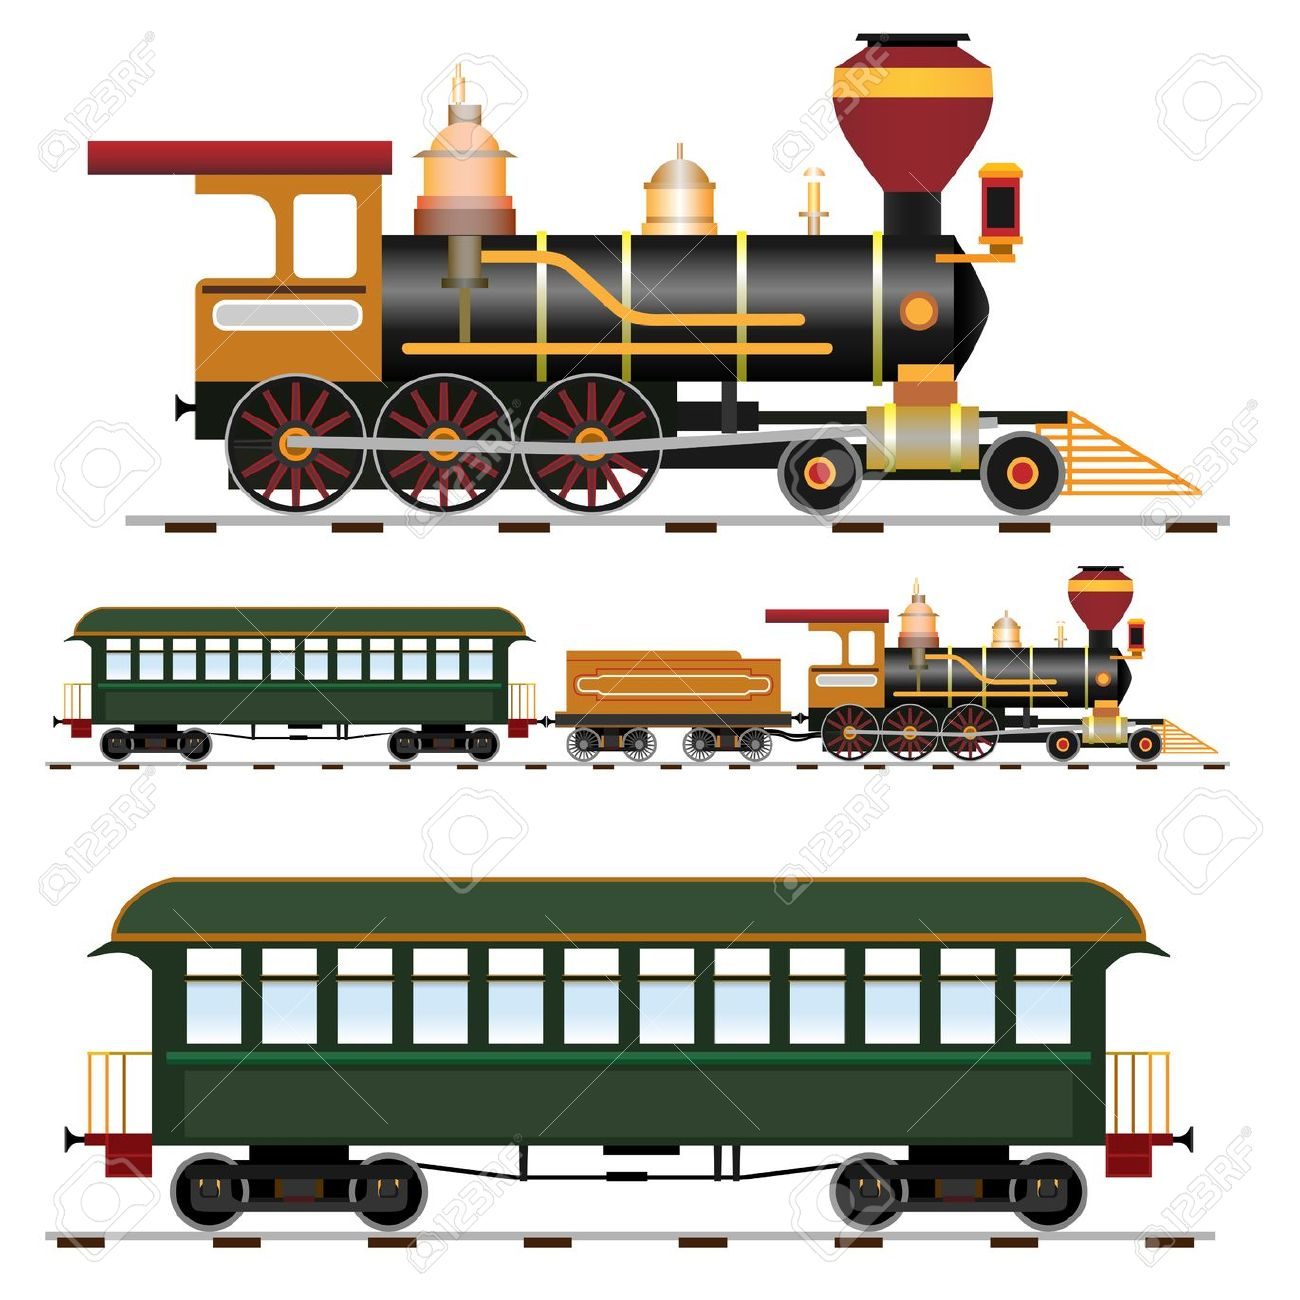 clipart steam locomotive #7